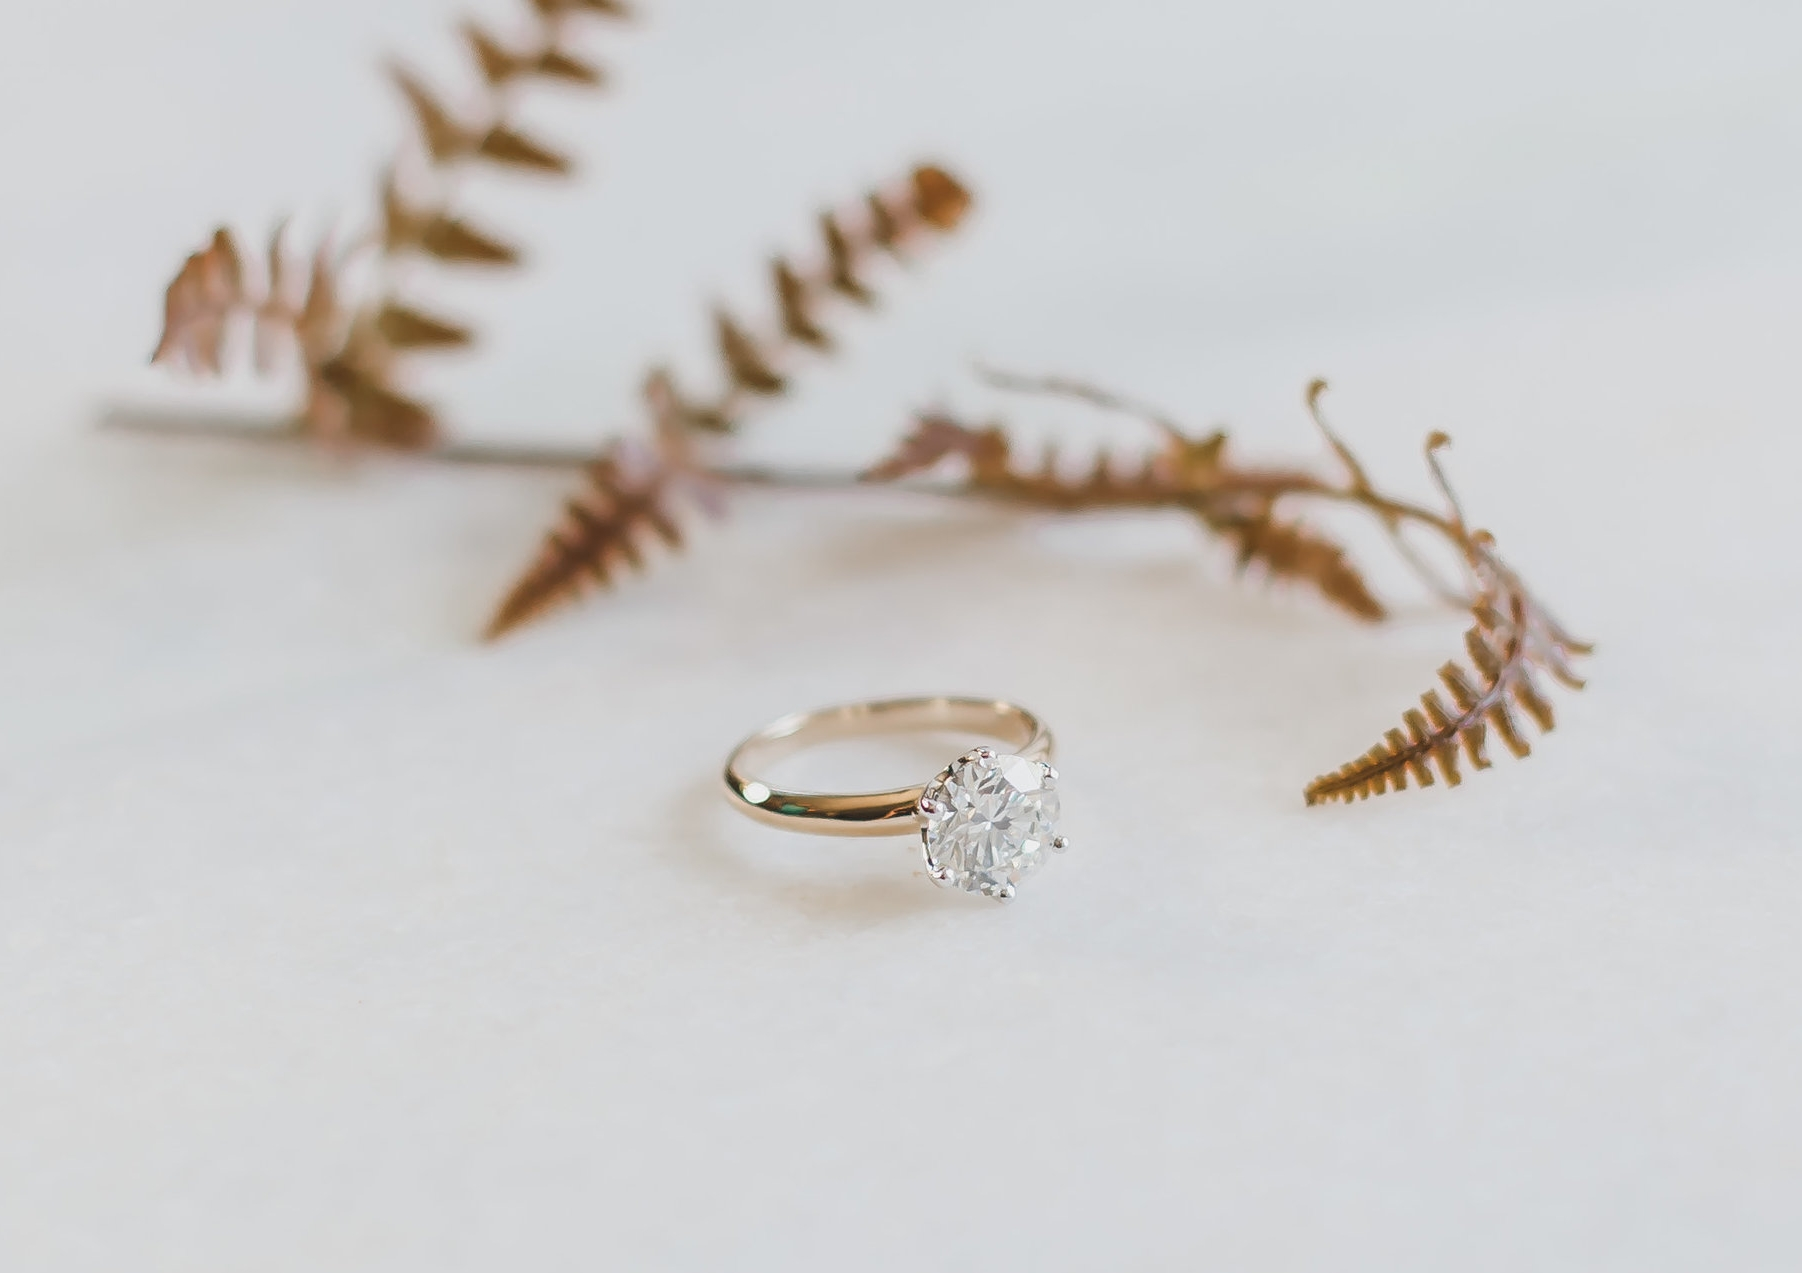 It begins with a personal consultation. - Buying a diamond can be an overwhelming task! After our initial meeting, I begin the search for the perfect diamond for you. I have long-lasting relationships with suppliers all over the world. I will search high and low for the stone that fits best within your budget and requirements. I am a Graduate Gemologist (GIA) and strive to provide you with a fun and memorable jewelry buying experience! I enjoy guiding and educating you through all phases of the process, from stone selection to putting your personal touch on your new one-of-a-kind engagement ring.